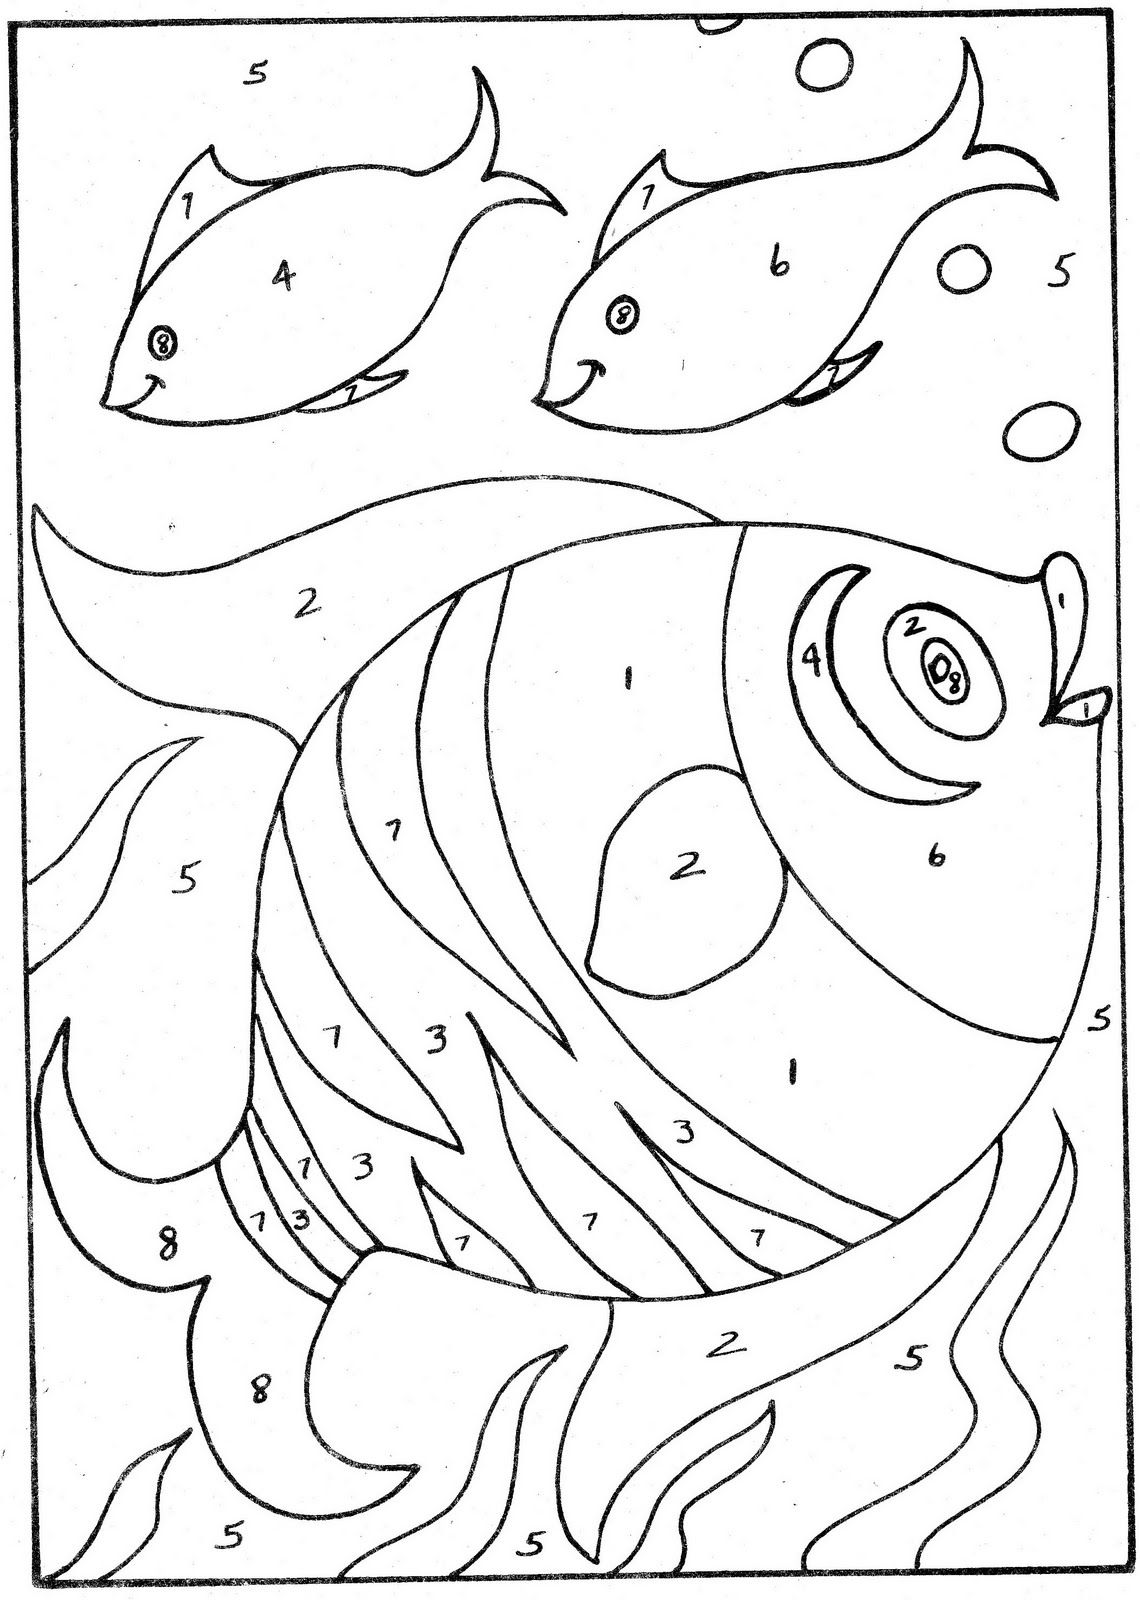 Coloring Pages For Kids : simple color by number Simple ...